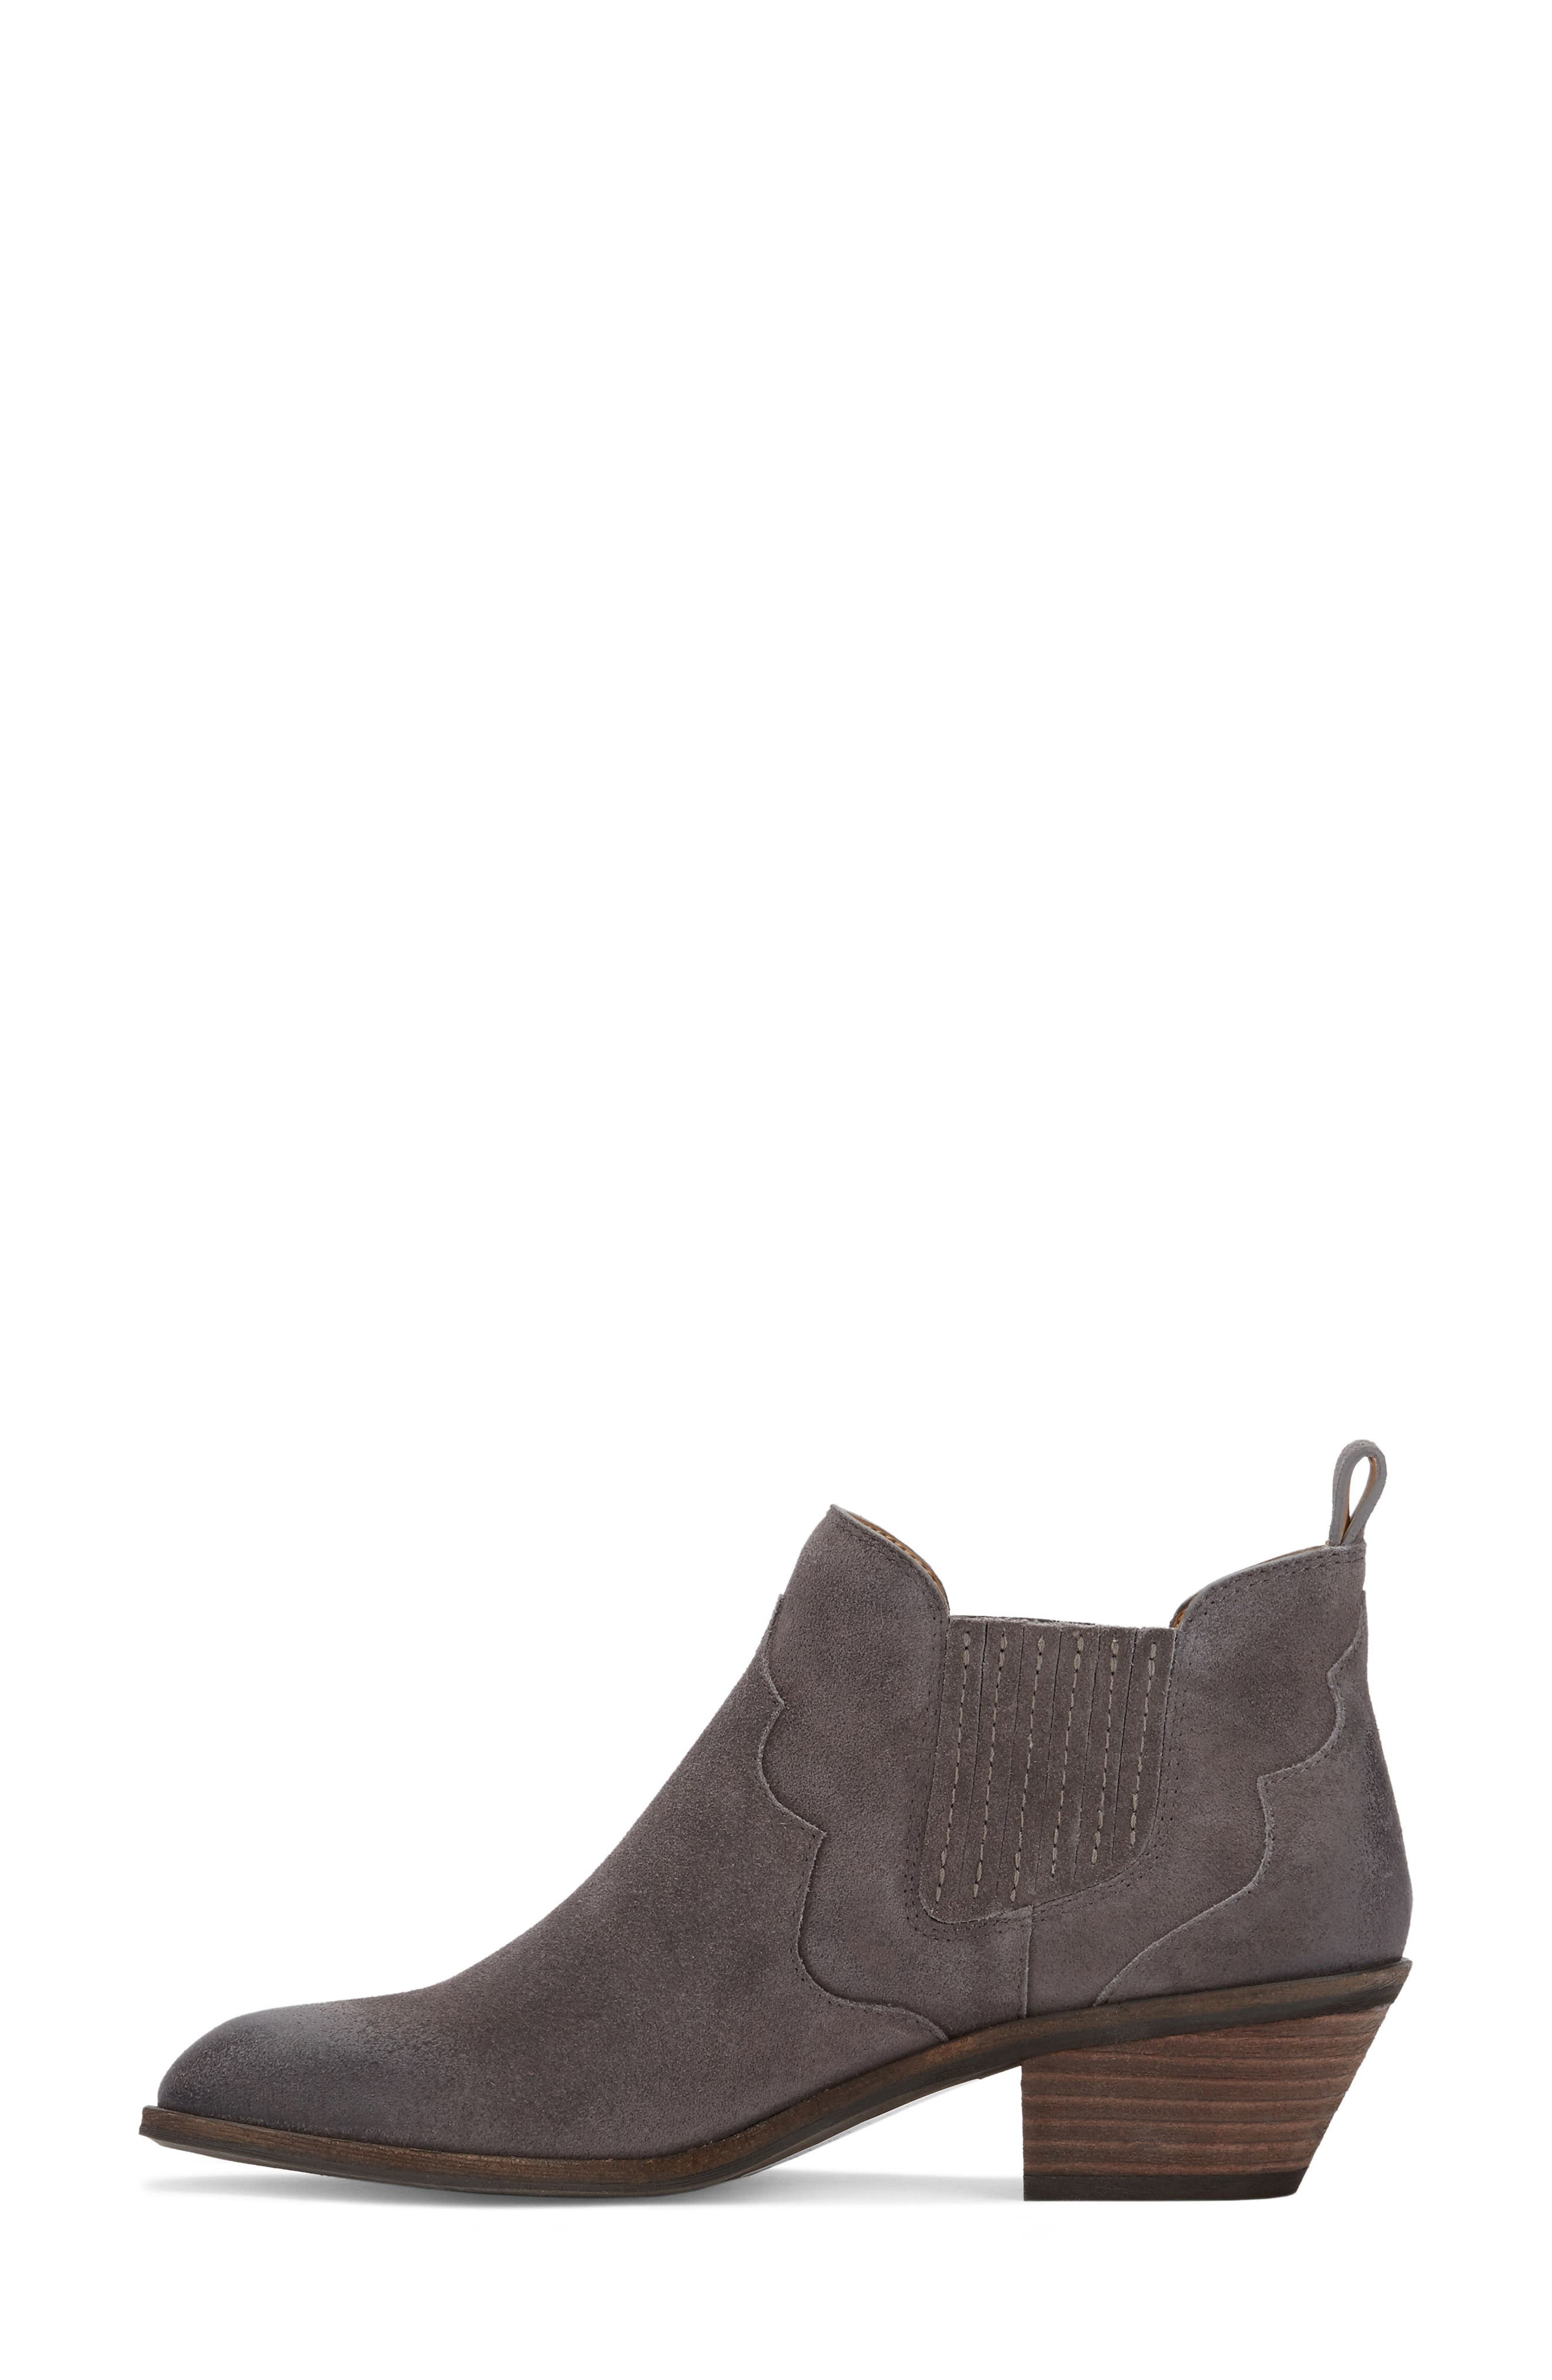 Naomi Bootie,                             Alternate thumbnail 2, color,                             Charcoal Suede